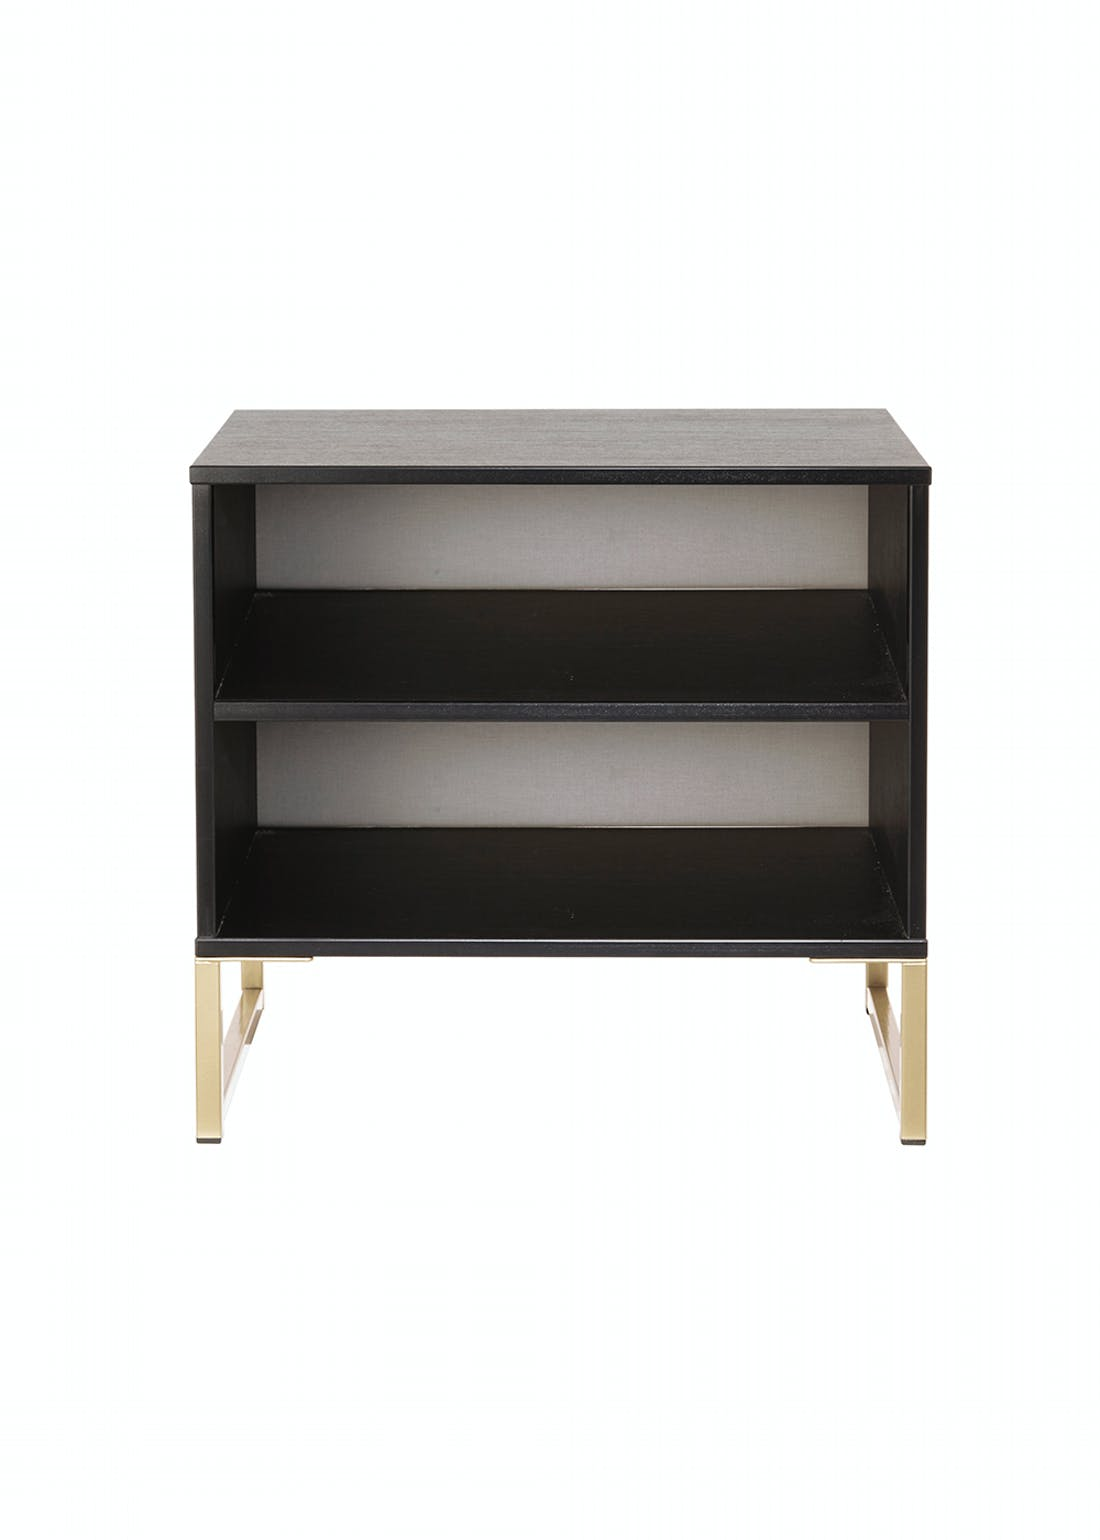 Swift Cordoba Open Bedside Table (54cm x 57.5cm x 39.5cm)